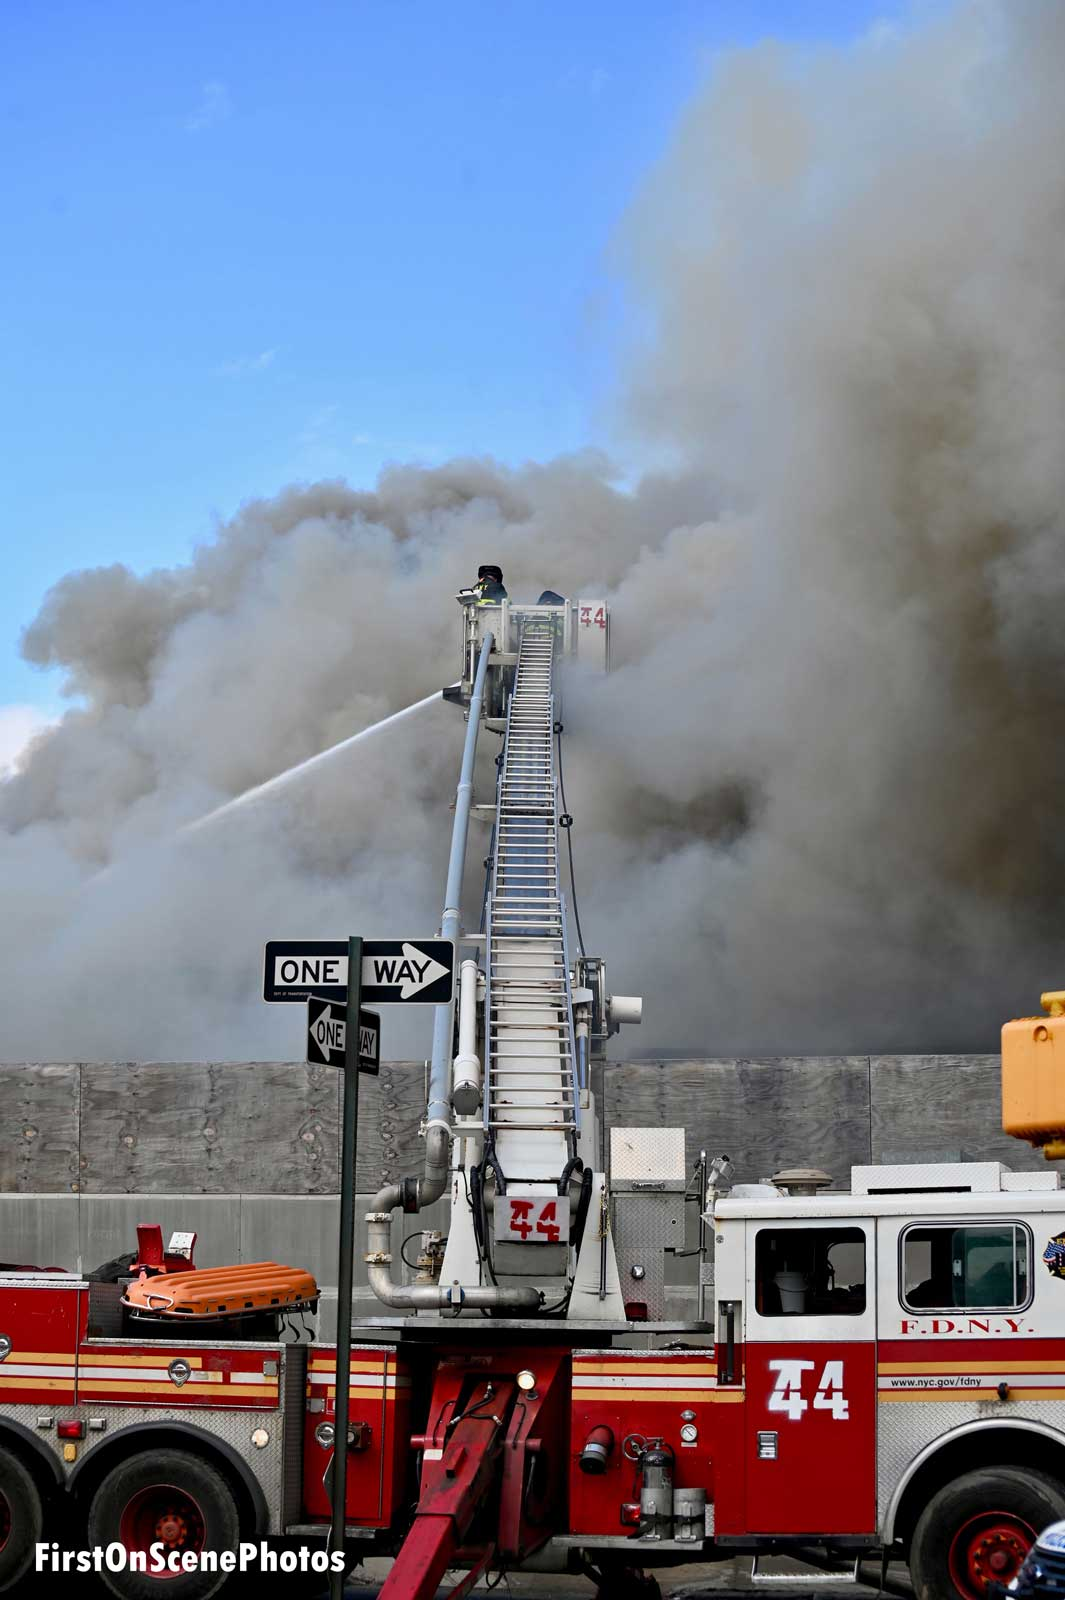 Another view of the tower ladder working